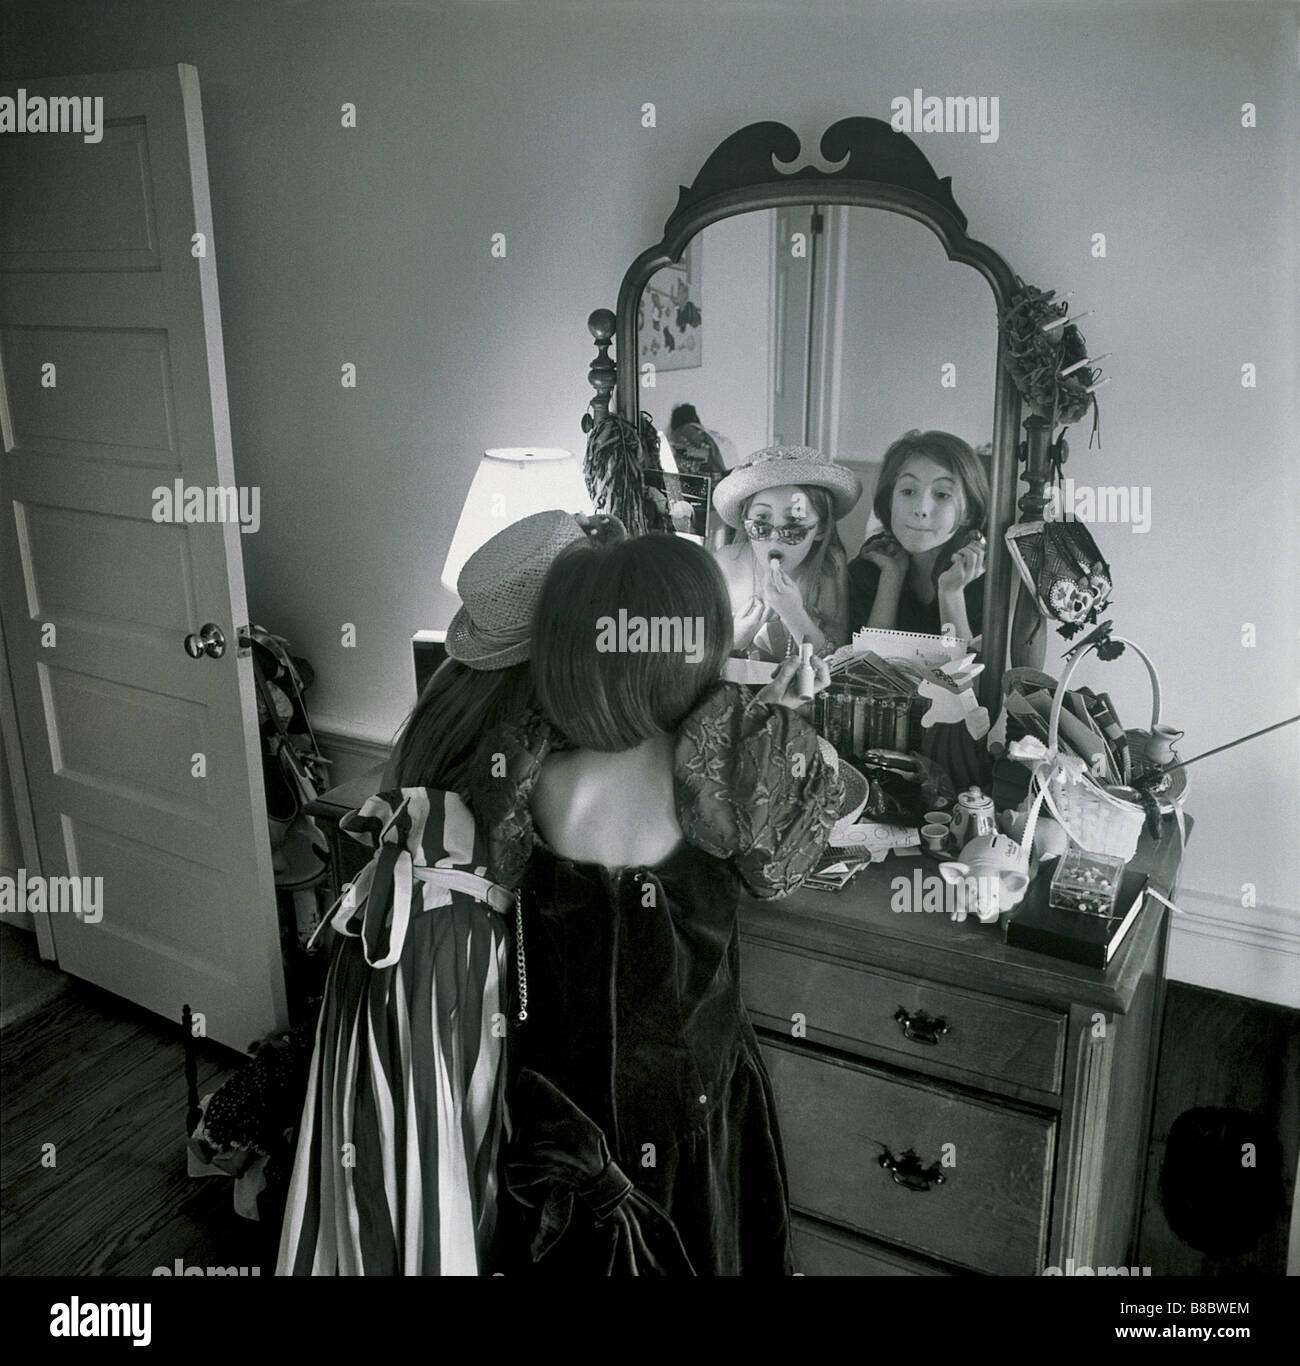 FL4881, Nick Kelsh; Two Young Girls Playing Dress-up   Mirror, BW - Stock Image